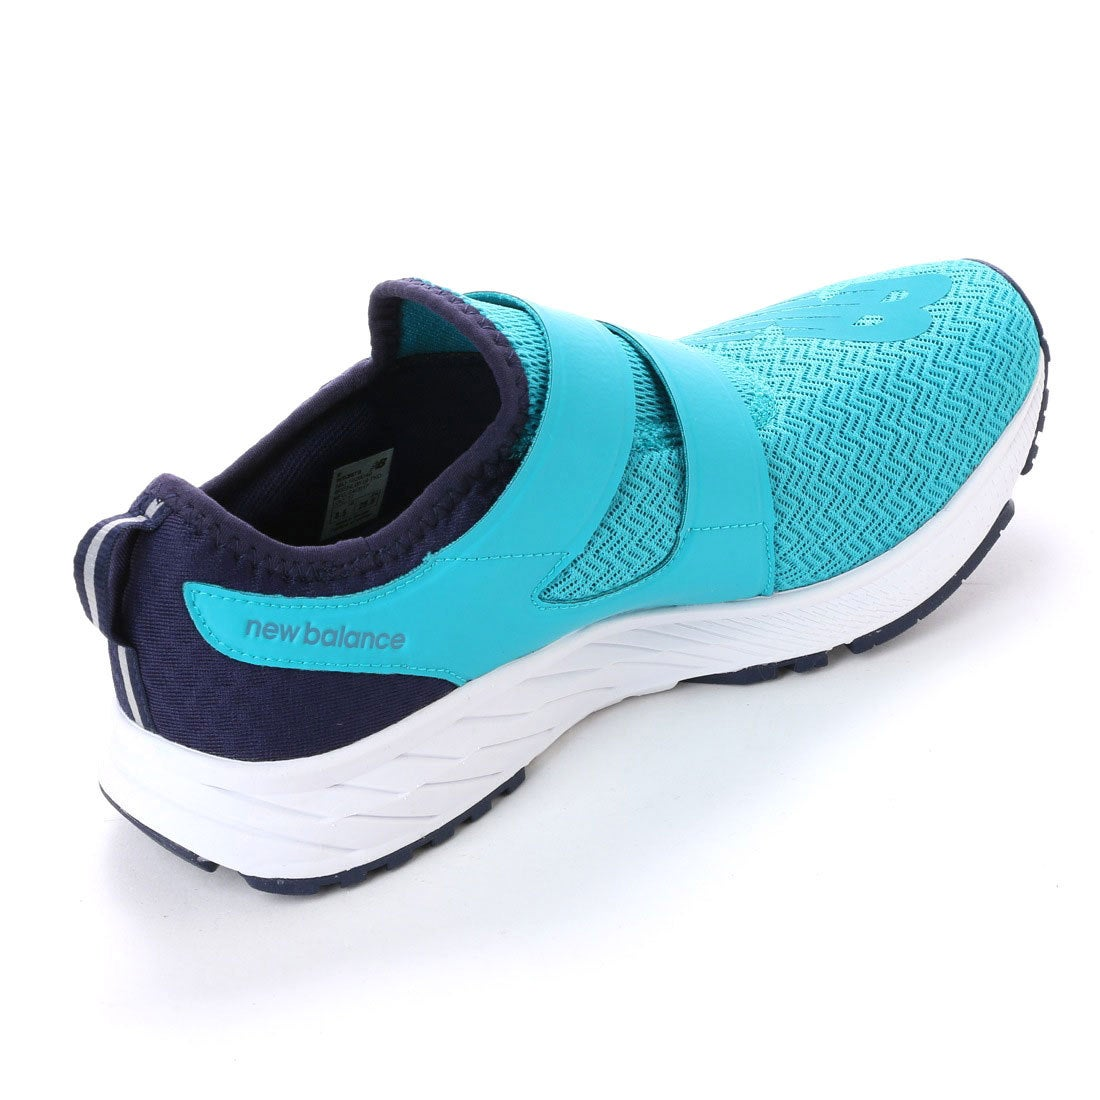 Well-Educated Spring New Net Shoe Man Breathable Cloth Shoes Tide Black Lattice Strap Shoe Back To Search Resultsshoes